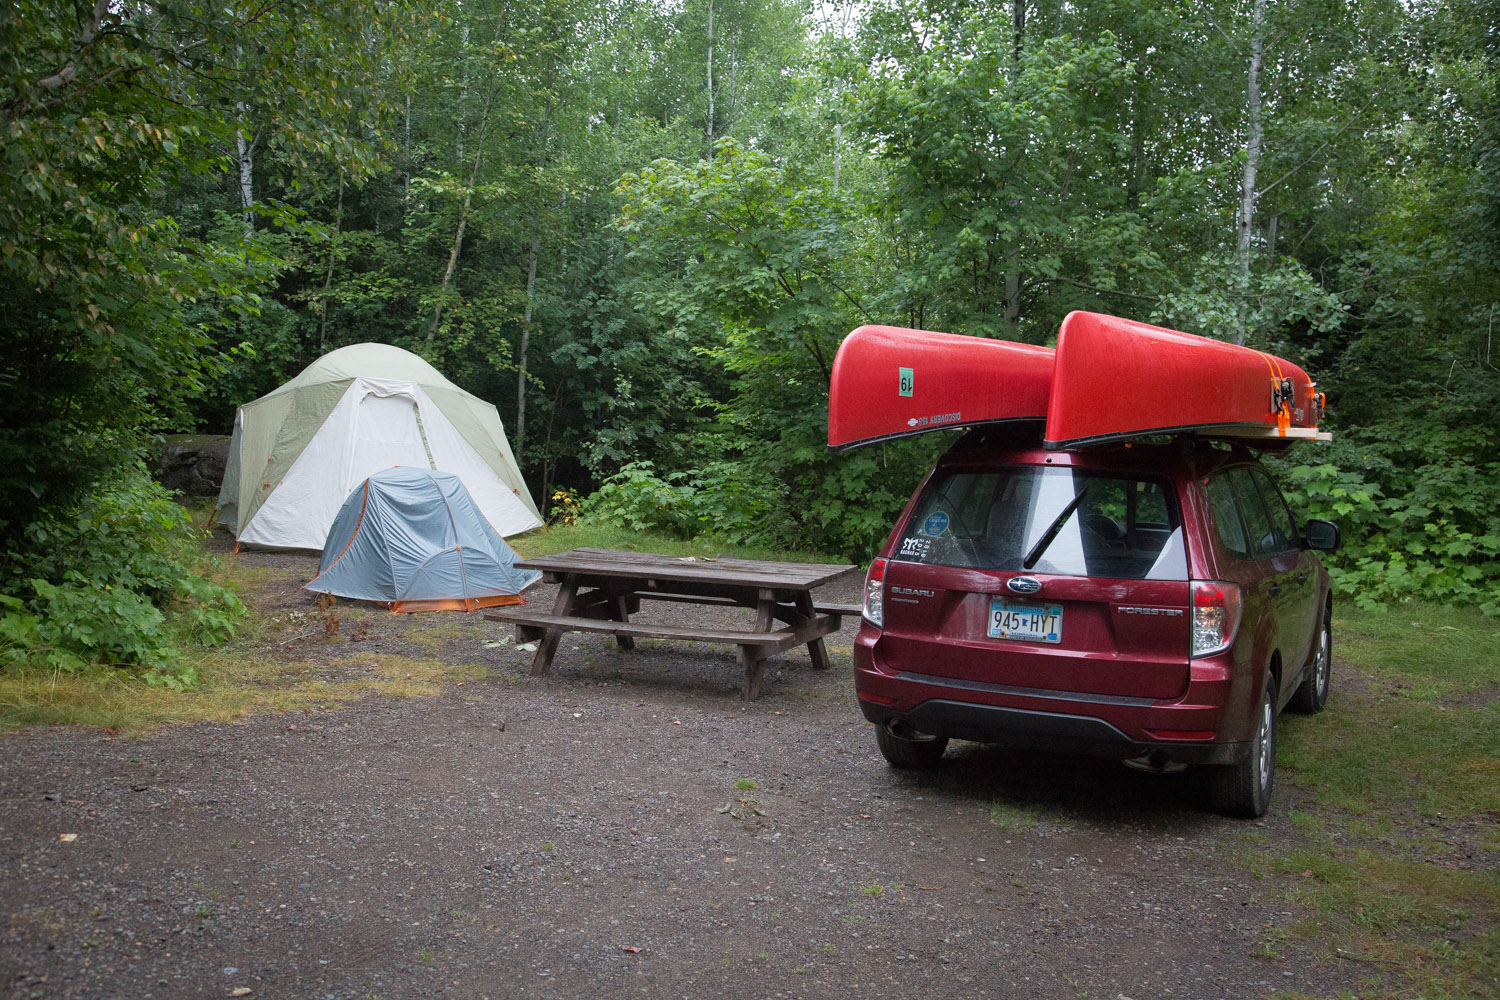 01-old-town-red-canoes-subaru-adventure-northen-minnesota-camping-bwca-mahonen-photography.jpg